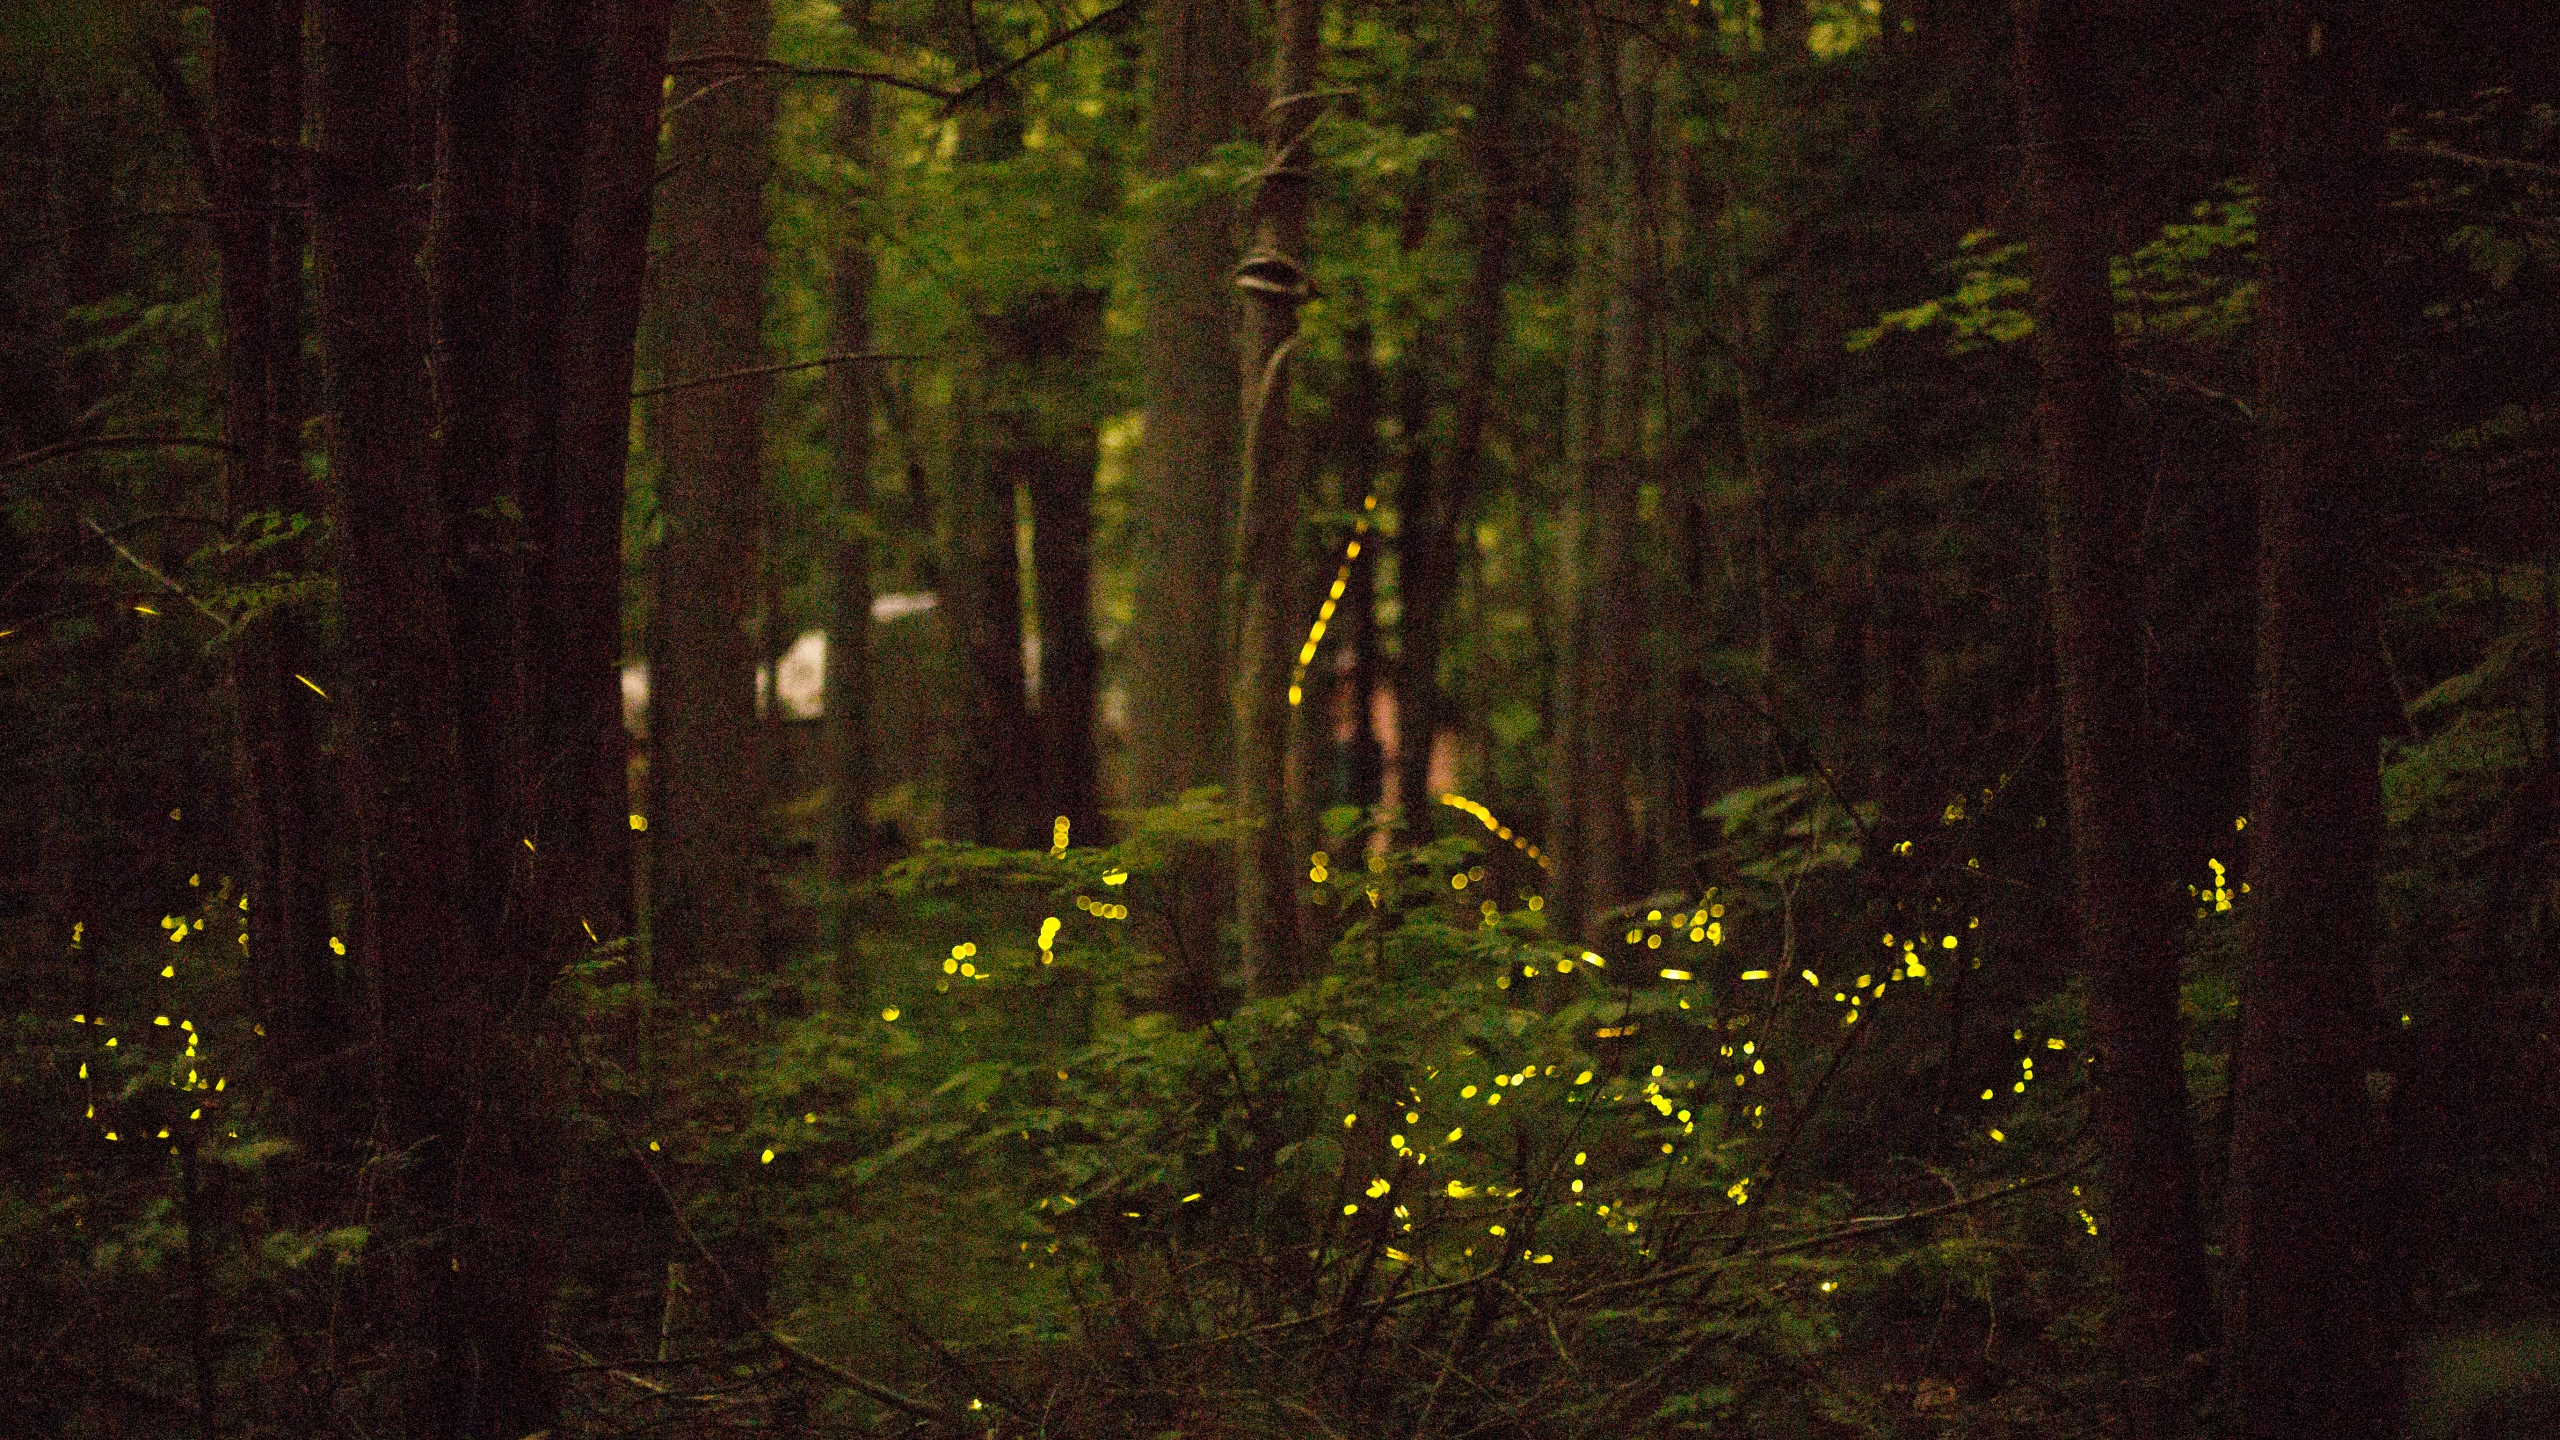 SYNCHRONOUS FIREFLIES_313499